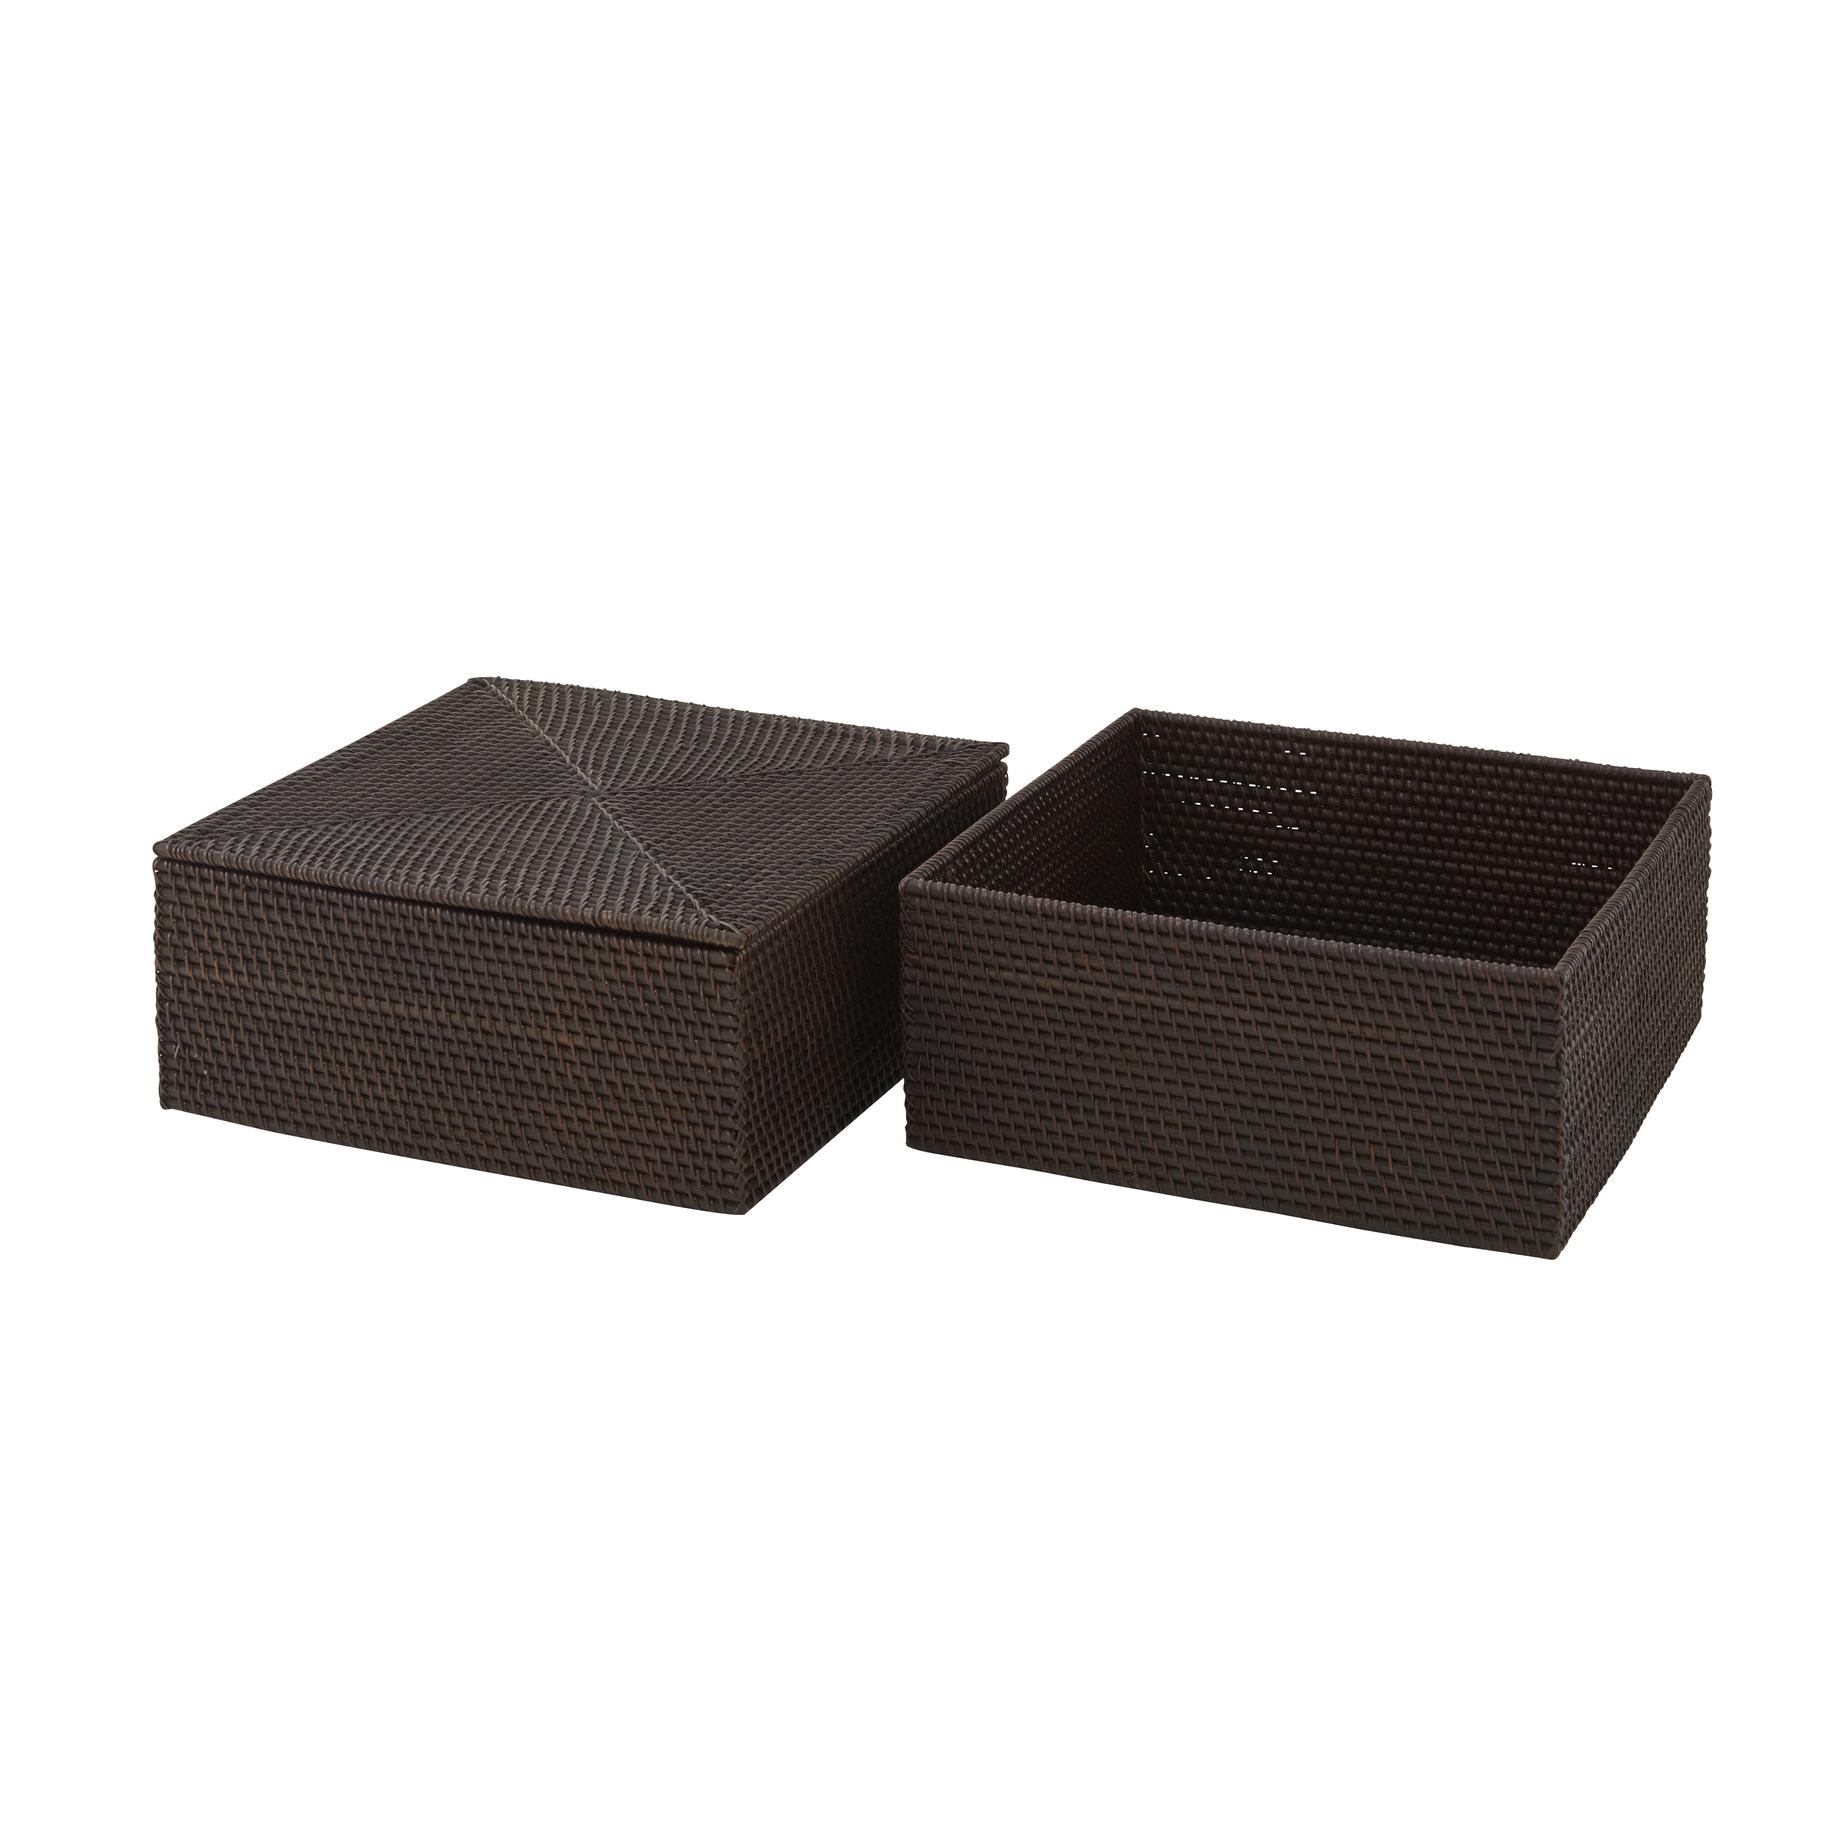 Clothes Baskets Basket Clothes Boxes Accessories From Designer Ligne